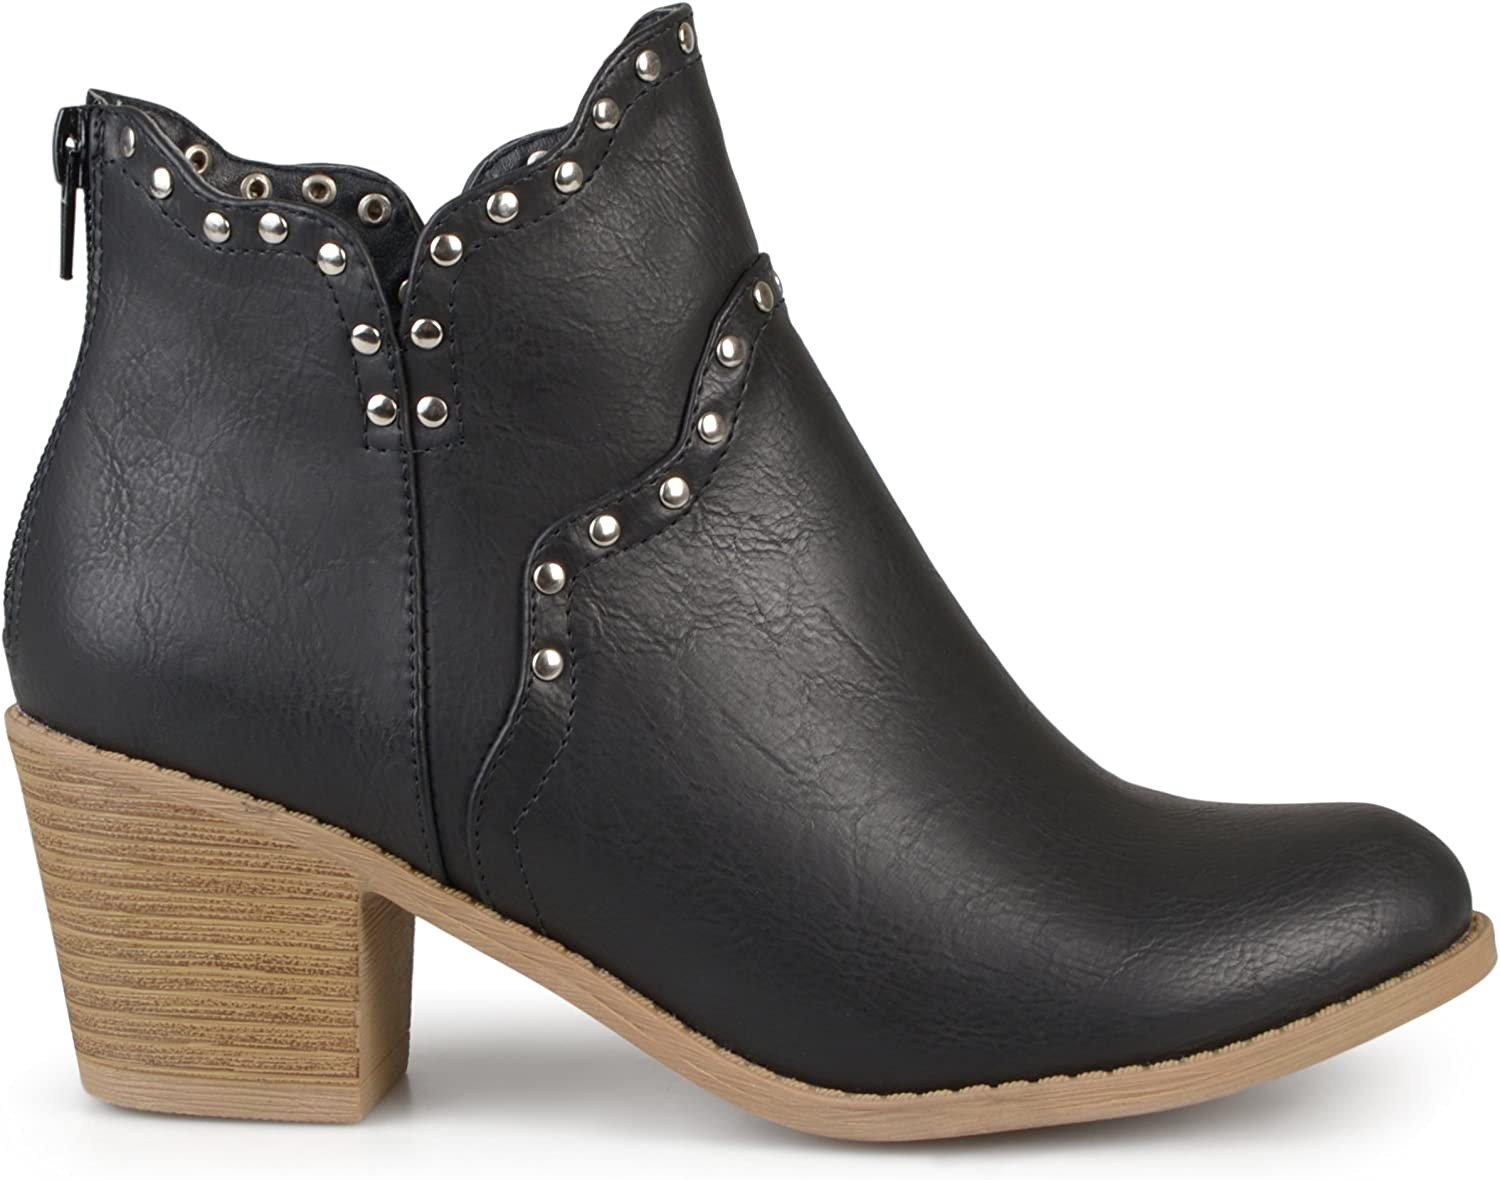 Brinley Co. Womens Faux Leather Stacked Heel Studded Boots